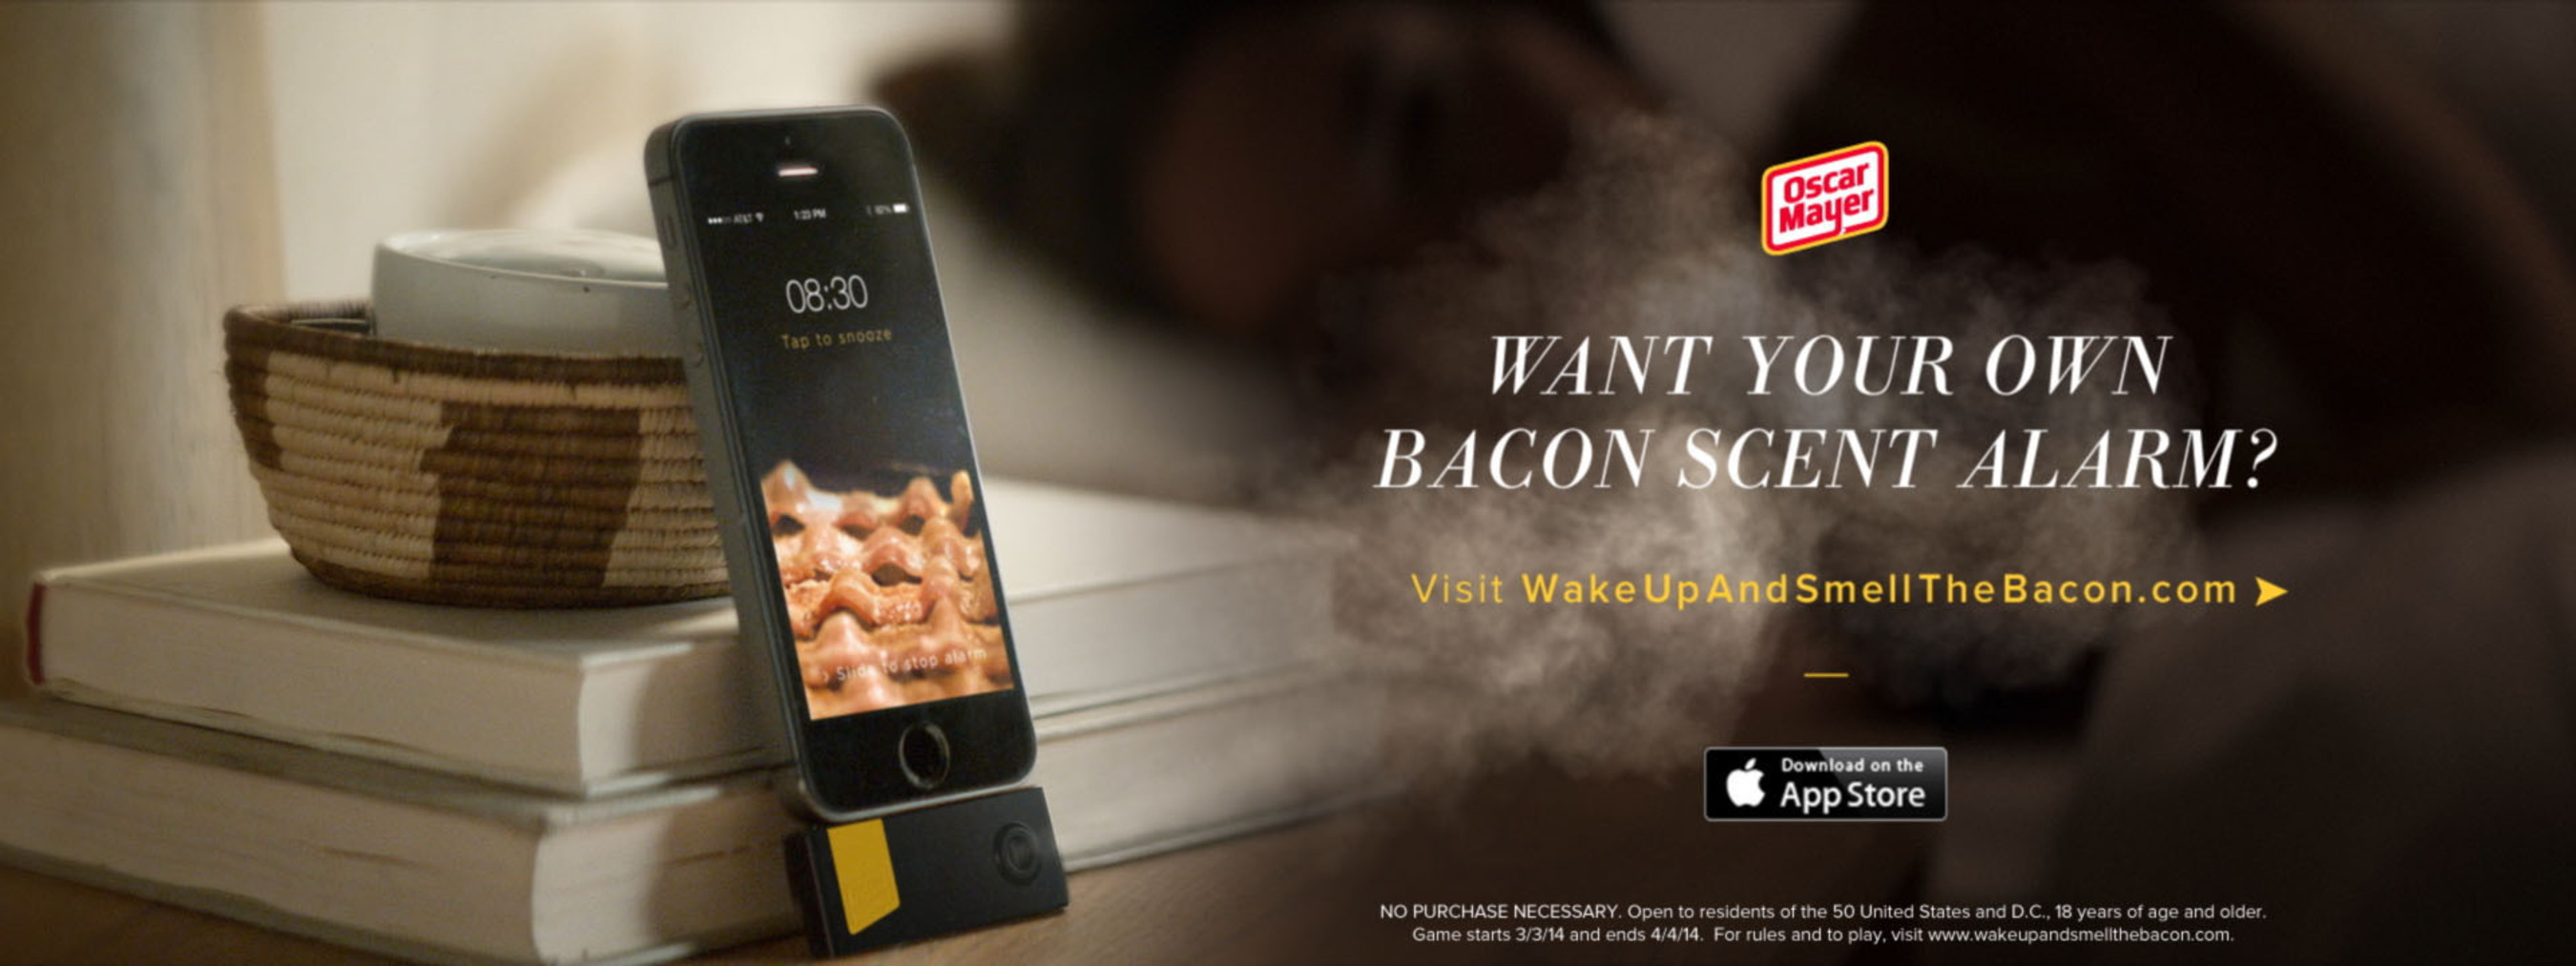 The Oscar Mayer Wake Up & Smell The Bacon iPhone Device.  (PRNewsFoto/Kraft Foods Group, Inc.)